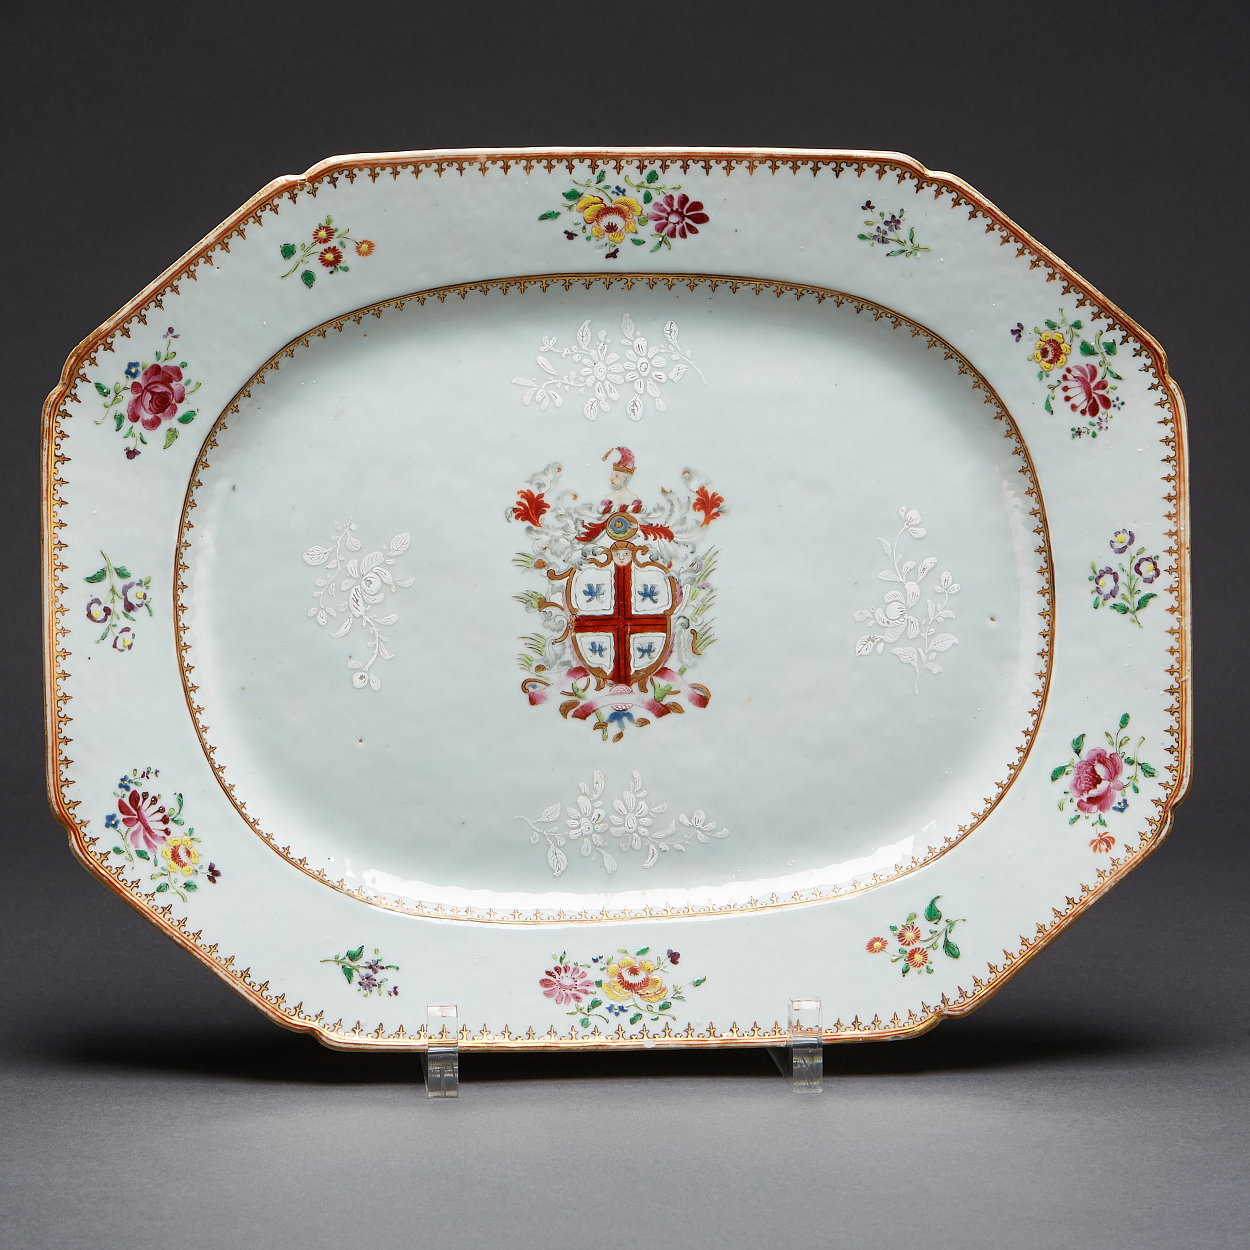 An Armorial Bourchier Dish